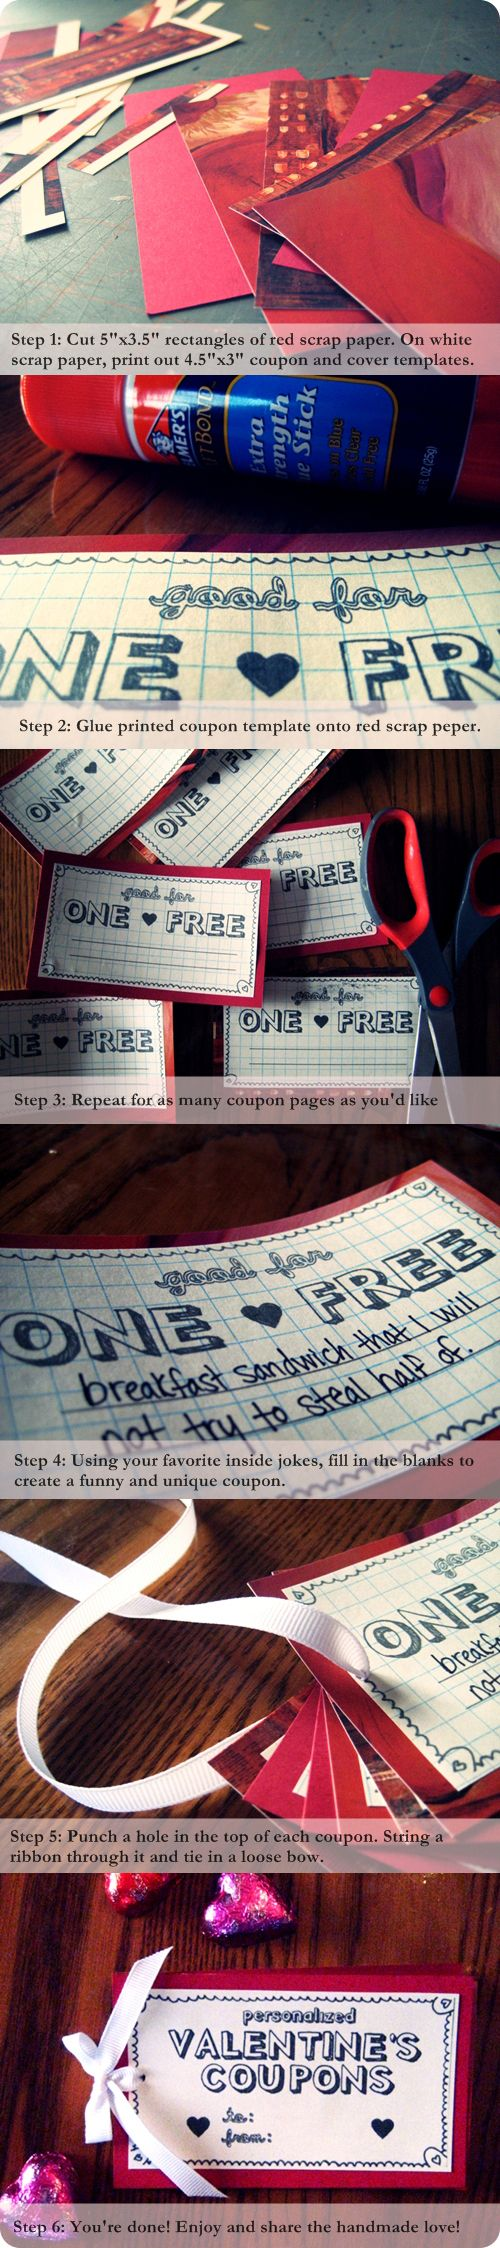 Best 25+ Boyfriend coupons ideas on Pinterest